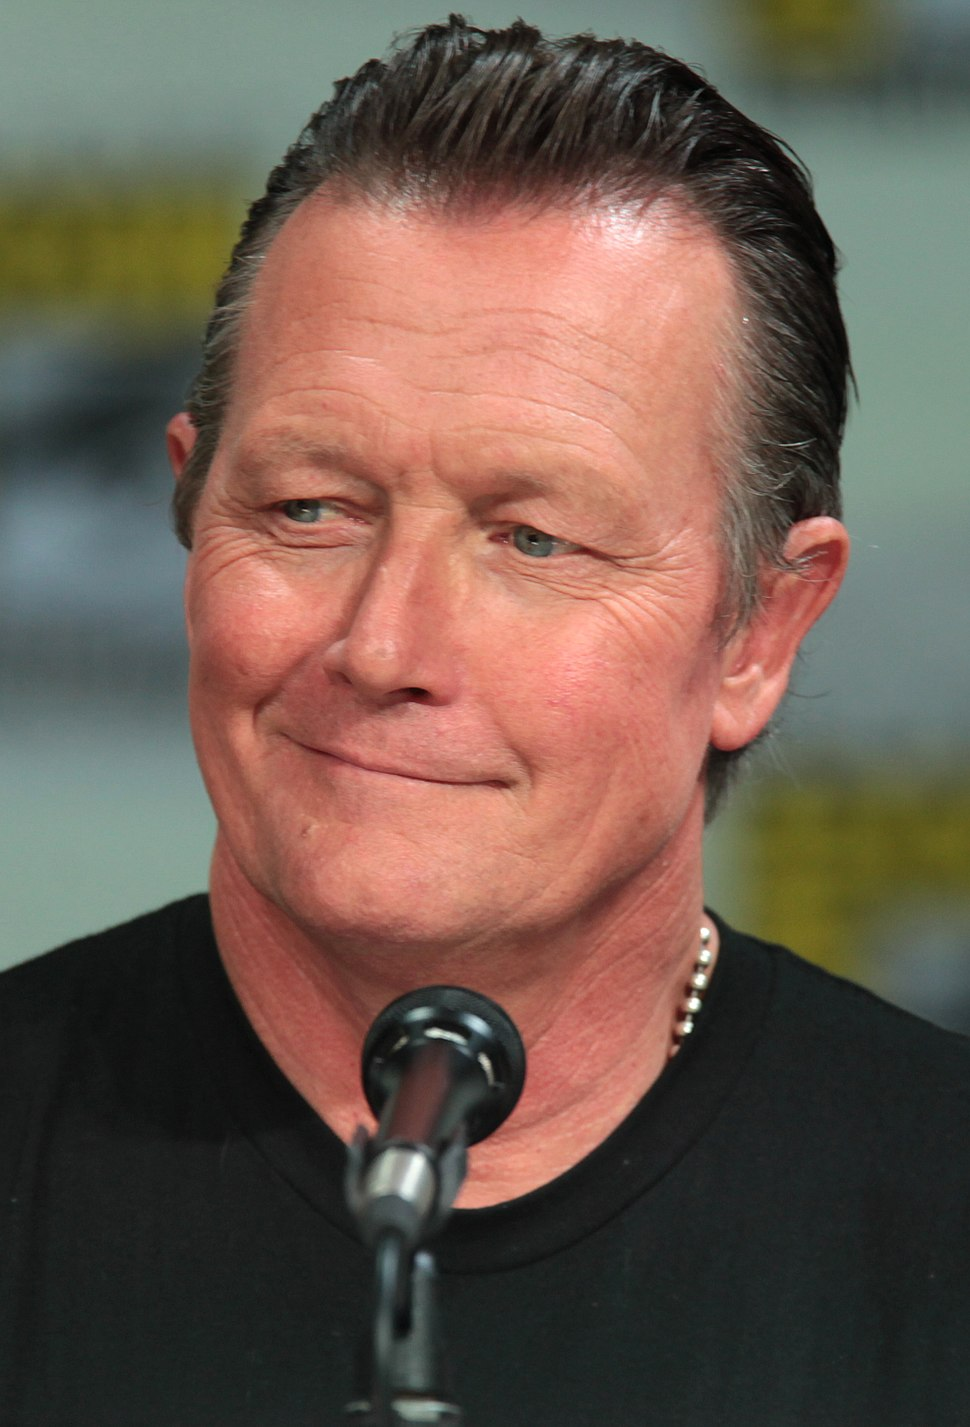 Robert Patrick SDCC 2014 (cropped)